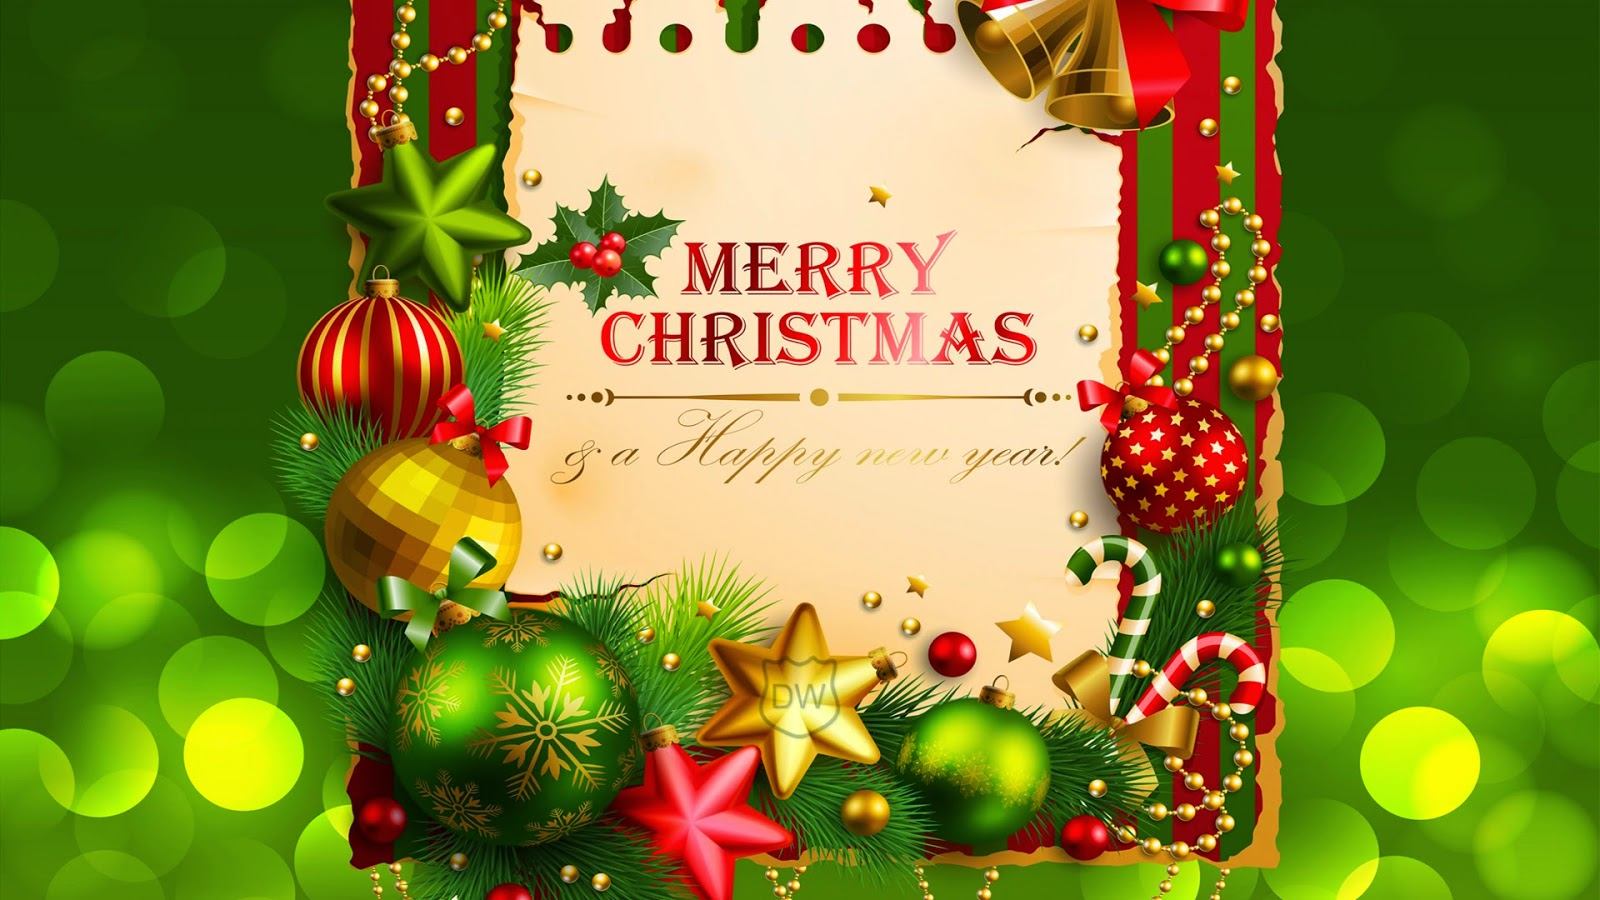 Merry Christmas Hd Images Wallpapers Happy Merry Christmas Hd 1600x900 Download Hd Wallpaper Wallpapertip